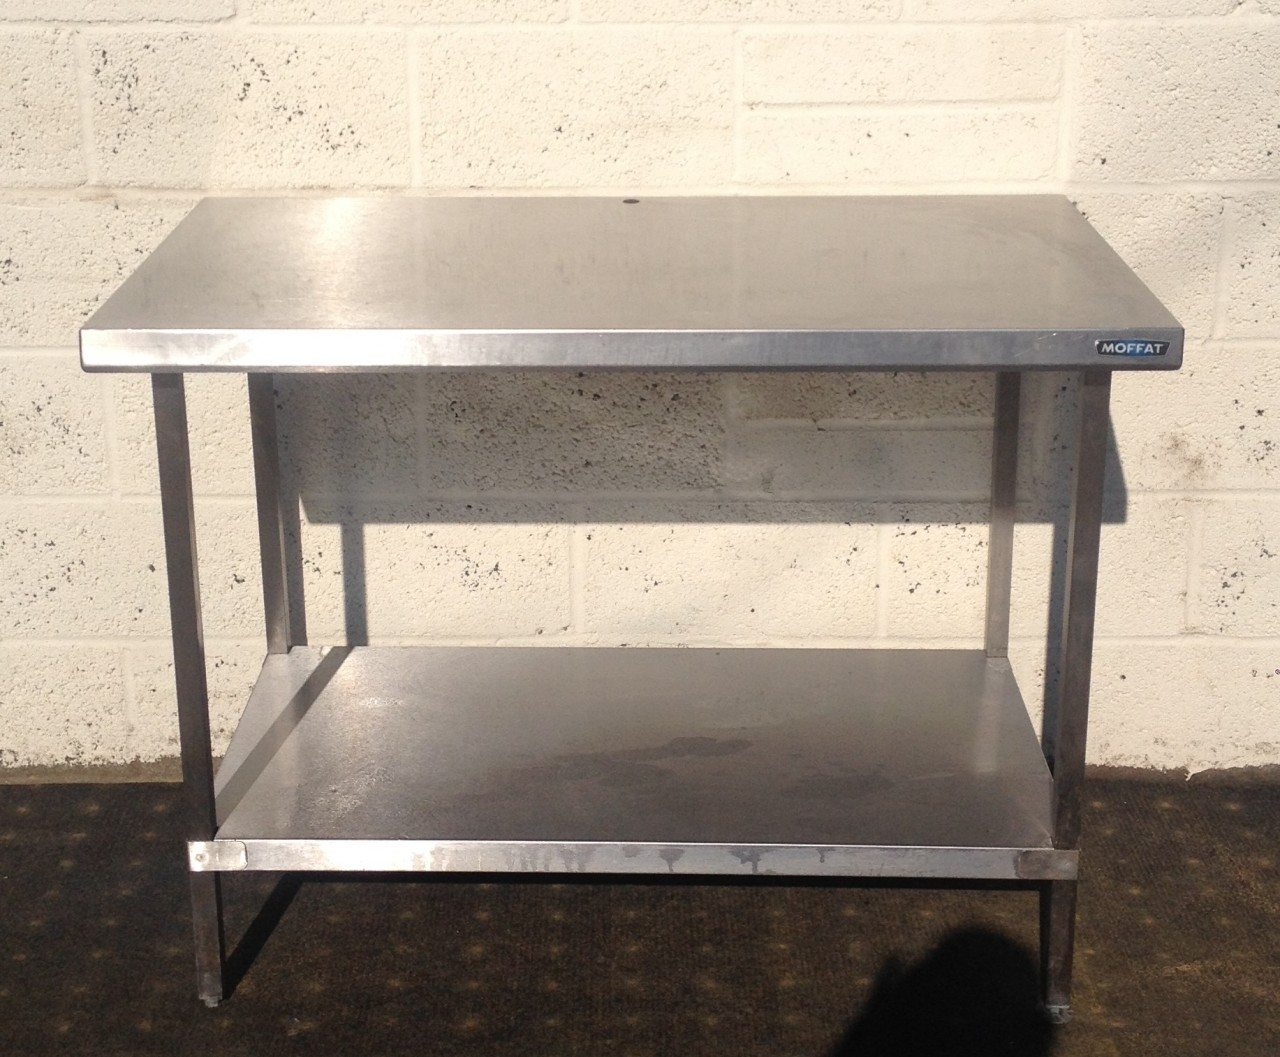 Moffat Stainless Centre Table with Undershelf